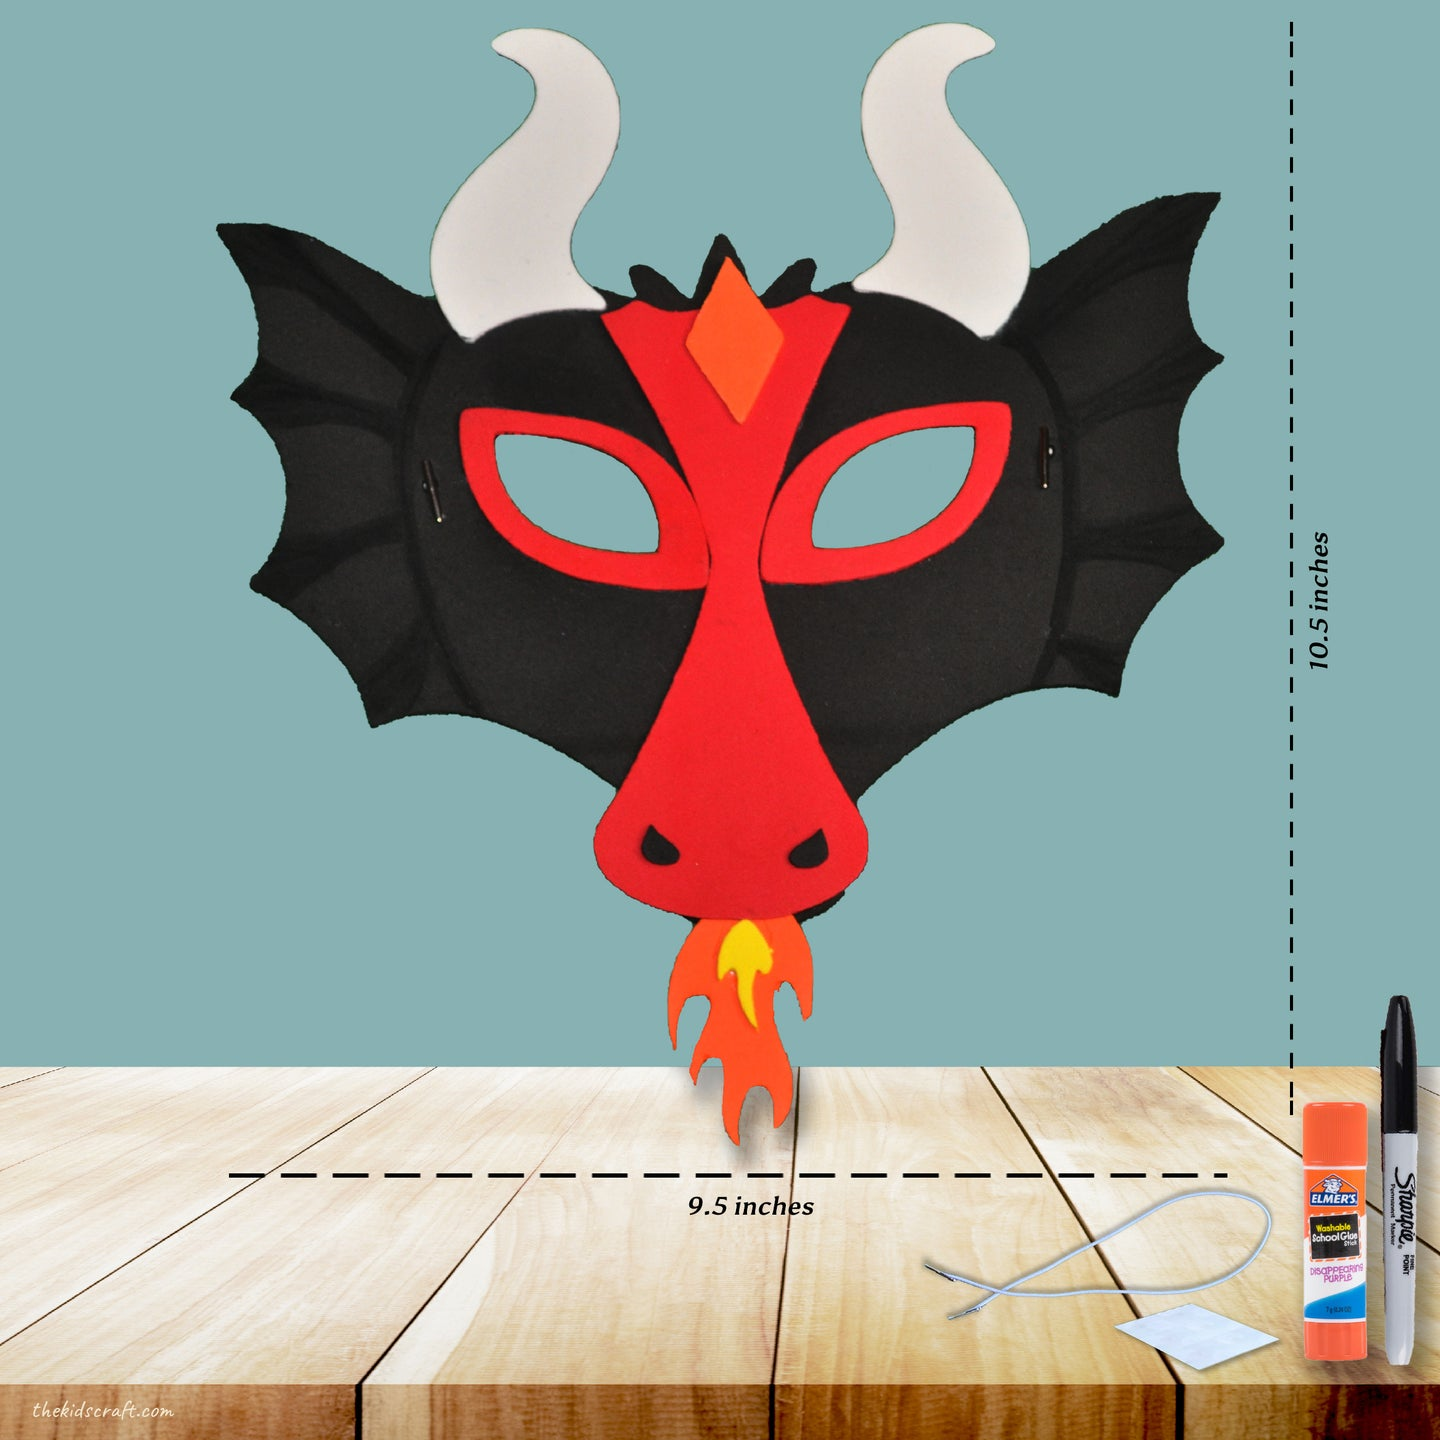 Wearable Fiery Dragon DIY Craft Kit (Pack of 1, 6 or 12 kits)